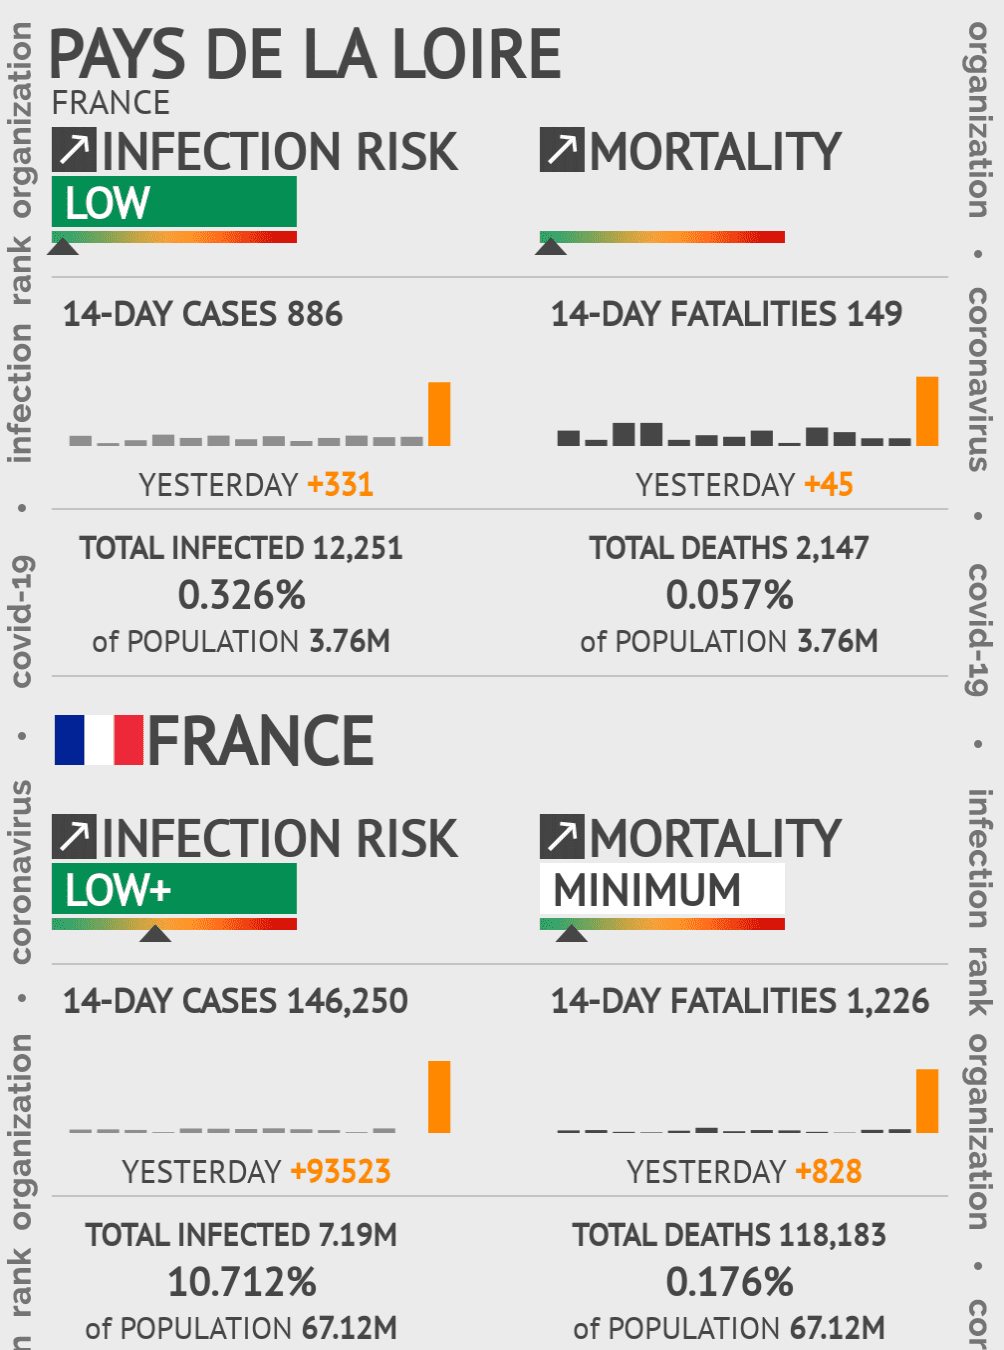 Pays de la Loire Coronavirus Covid-19 Risk of Infection Update for 5 Counties on March 18, 2021